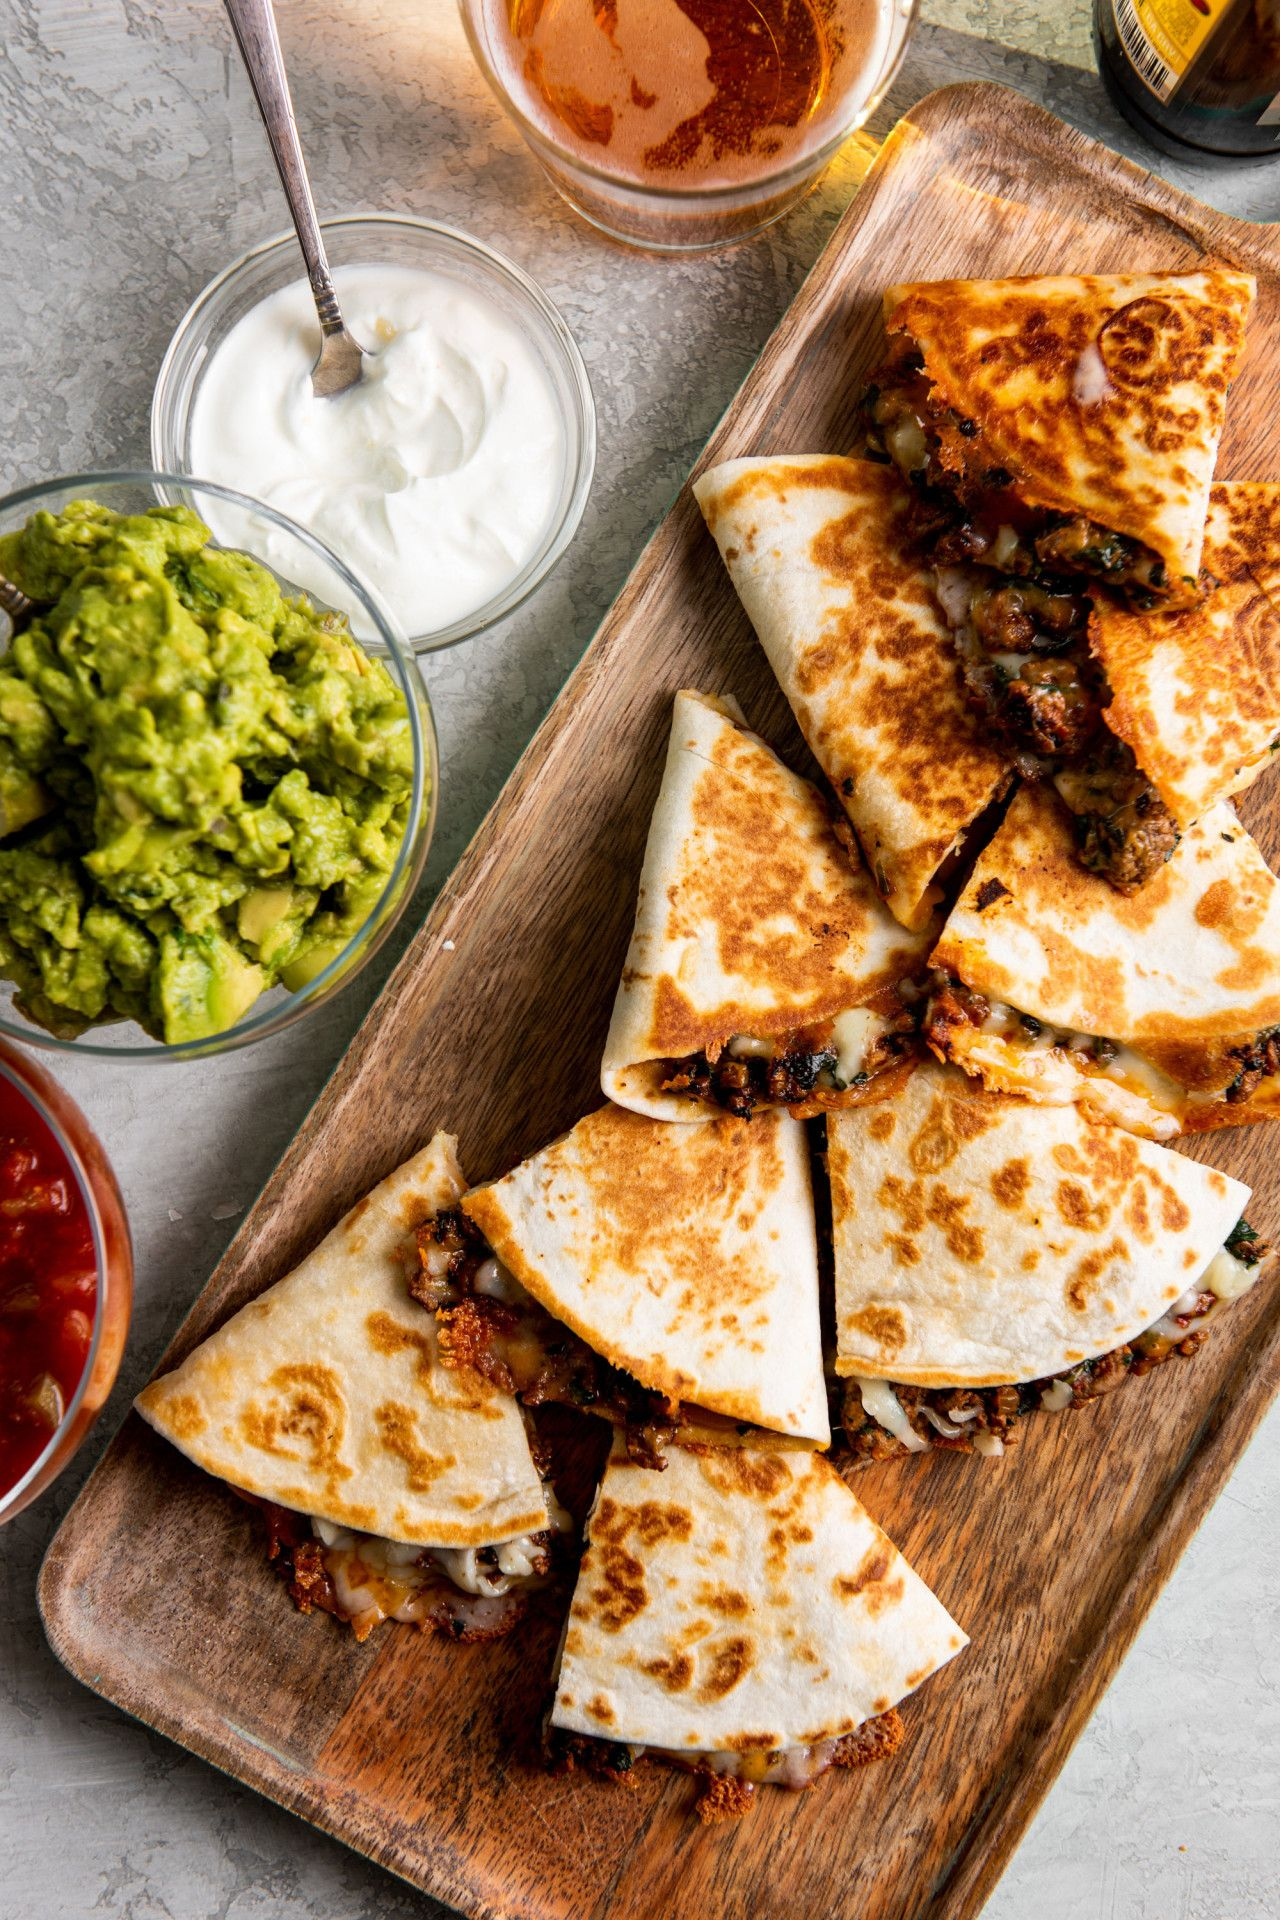 Cheesy Ground Beef Quesadillas Delicious Cheesy Quesadillas With Hidden Vegetables A Leafy Green Can Help V Beef Quesadillas Recipes Ground Beef Quesadillas